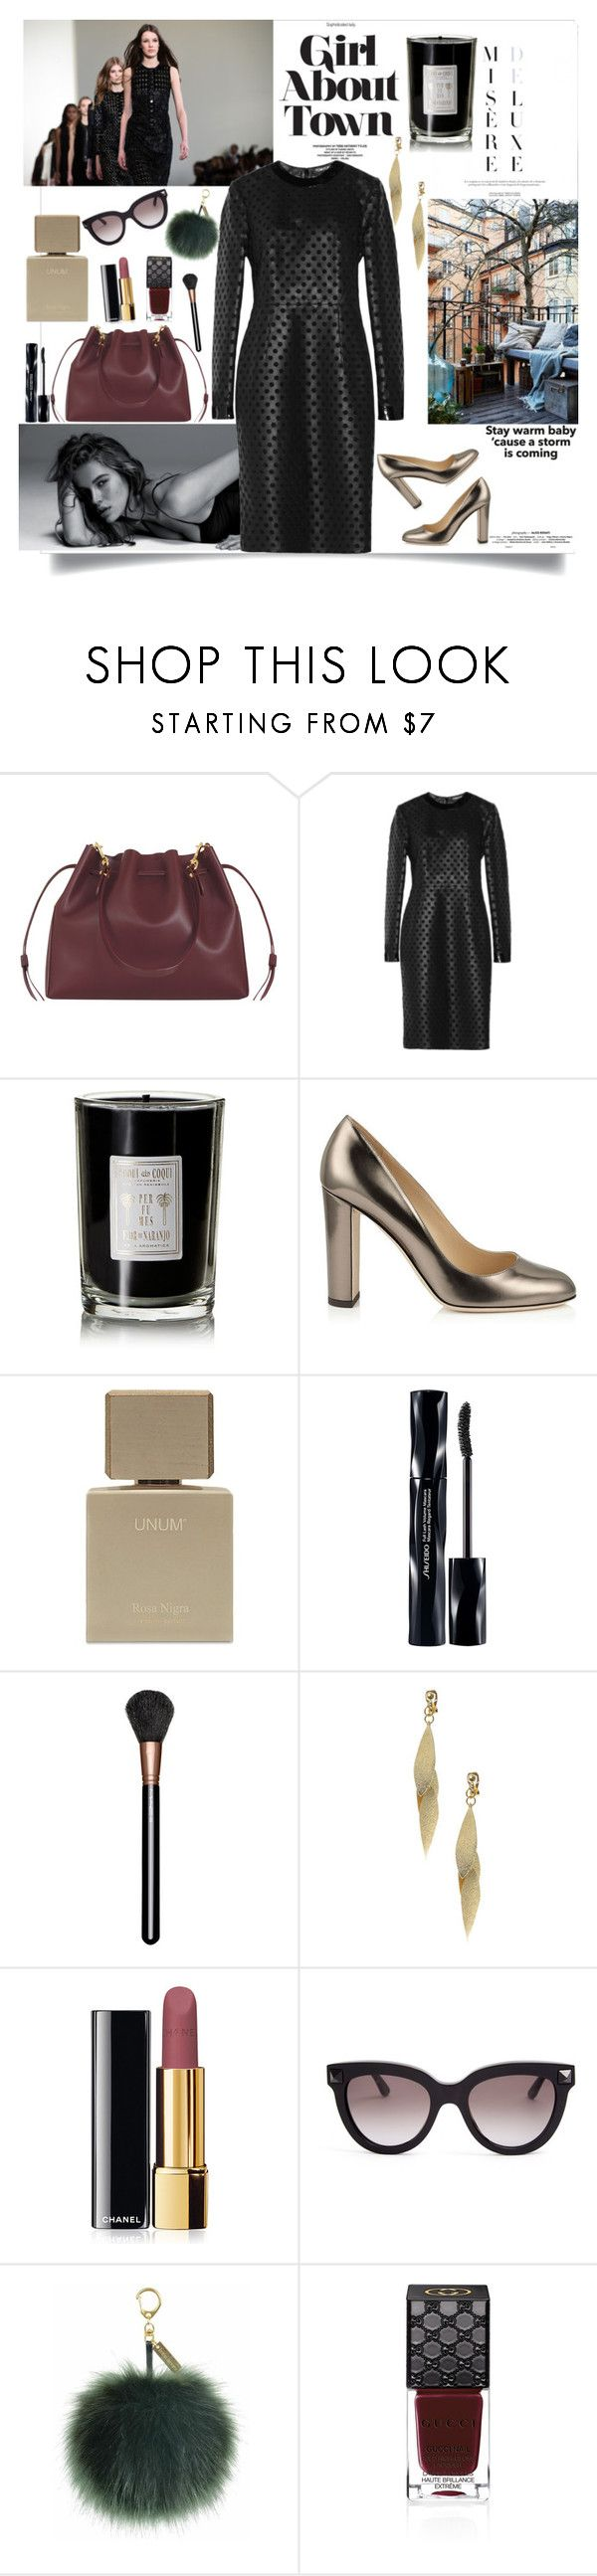 """Stay..."" by carlamar ❤ liked on Polyvore featuring Sophie Hulme, Mercedes-Benz, Tom Ford, Coqui Coqui, Jimmy Choo, Shiseido, MAC Cosmetics, Chanel, Valentino and Gucci"